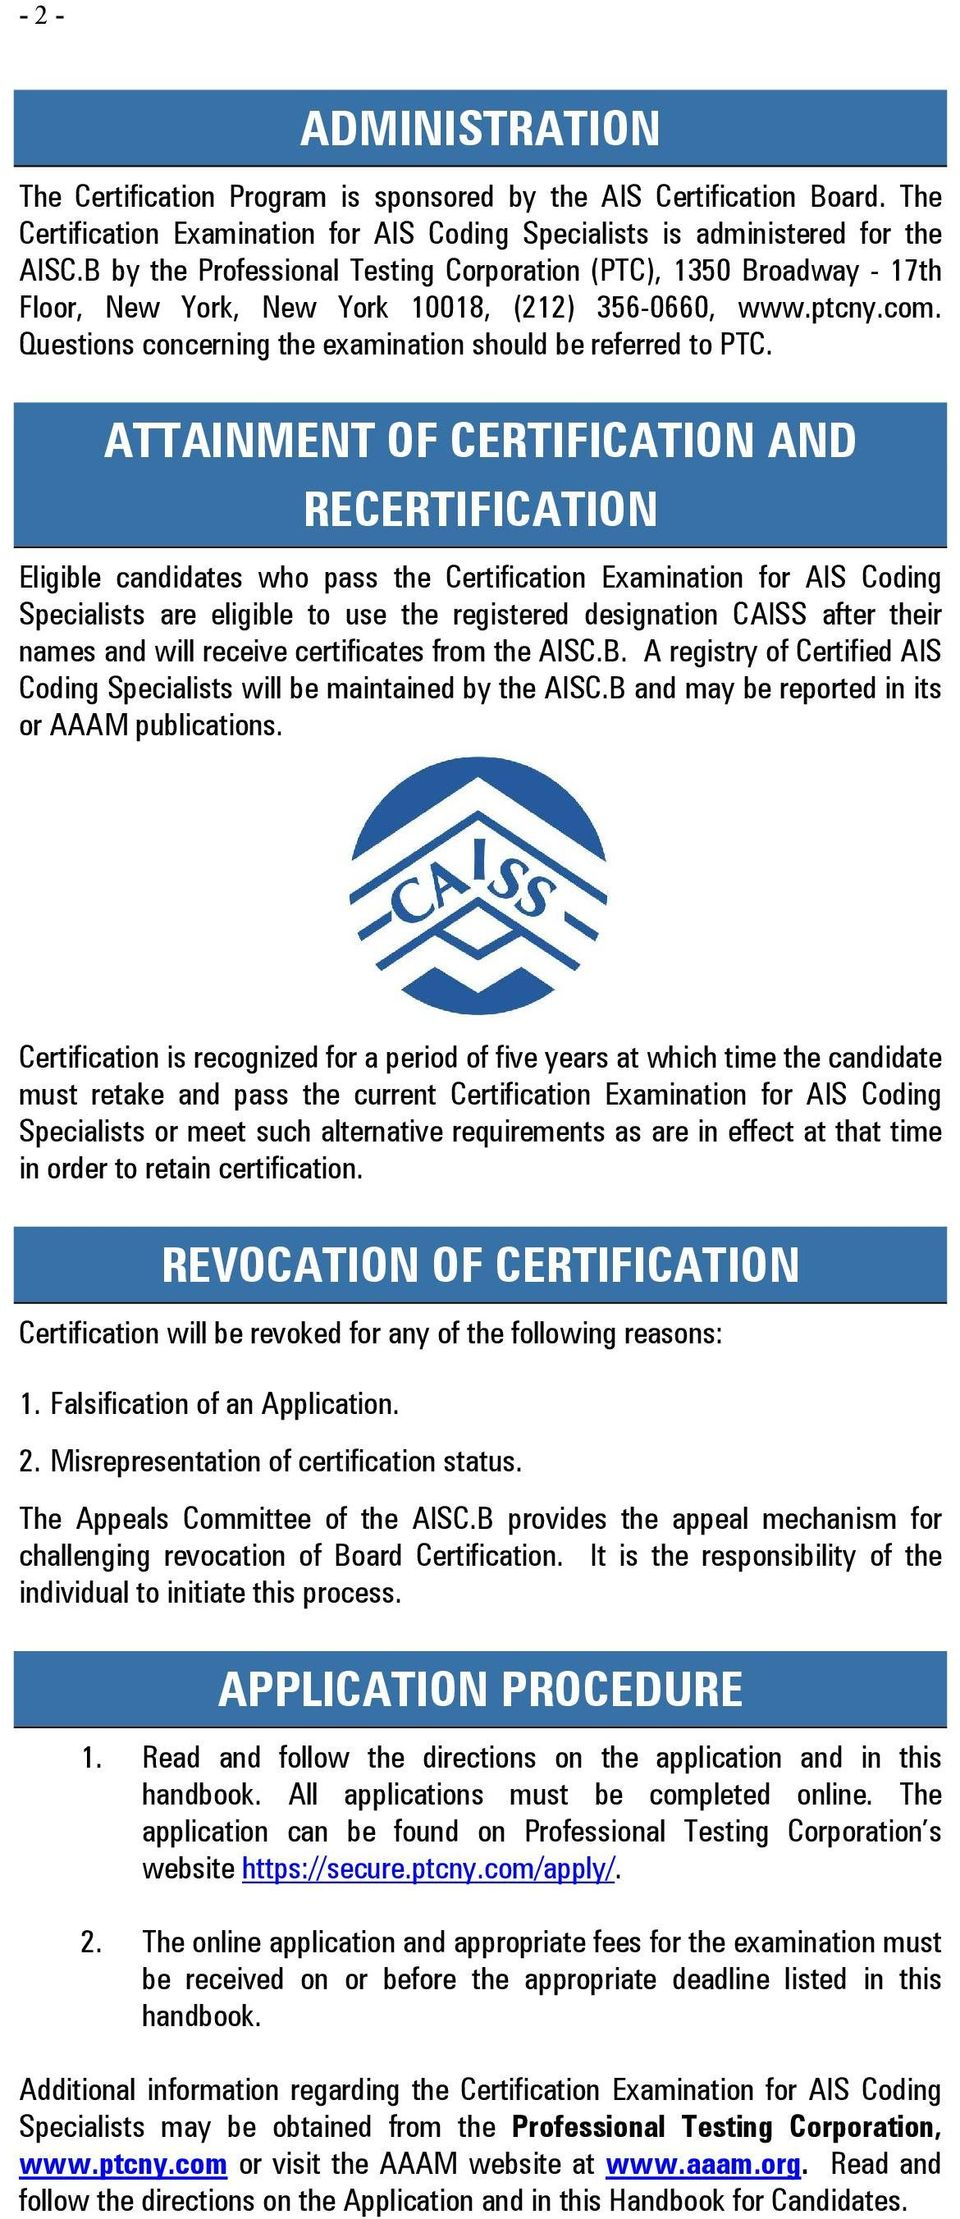 Certification Examination For Ais Coding Specialists Handbook For